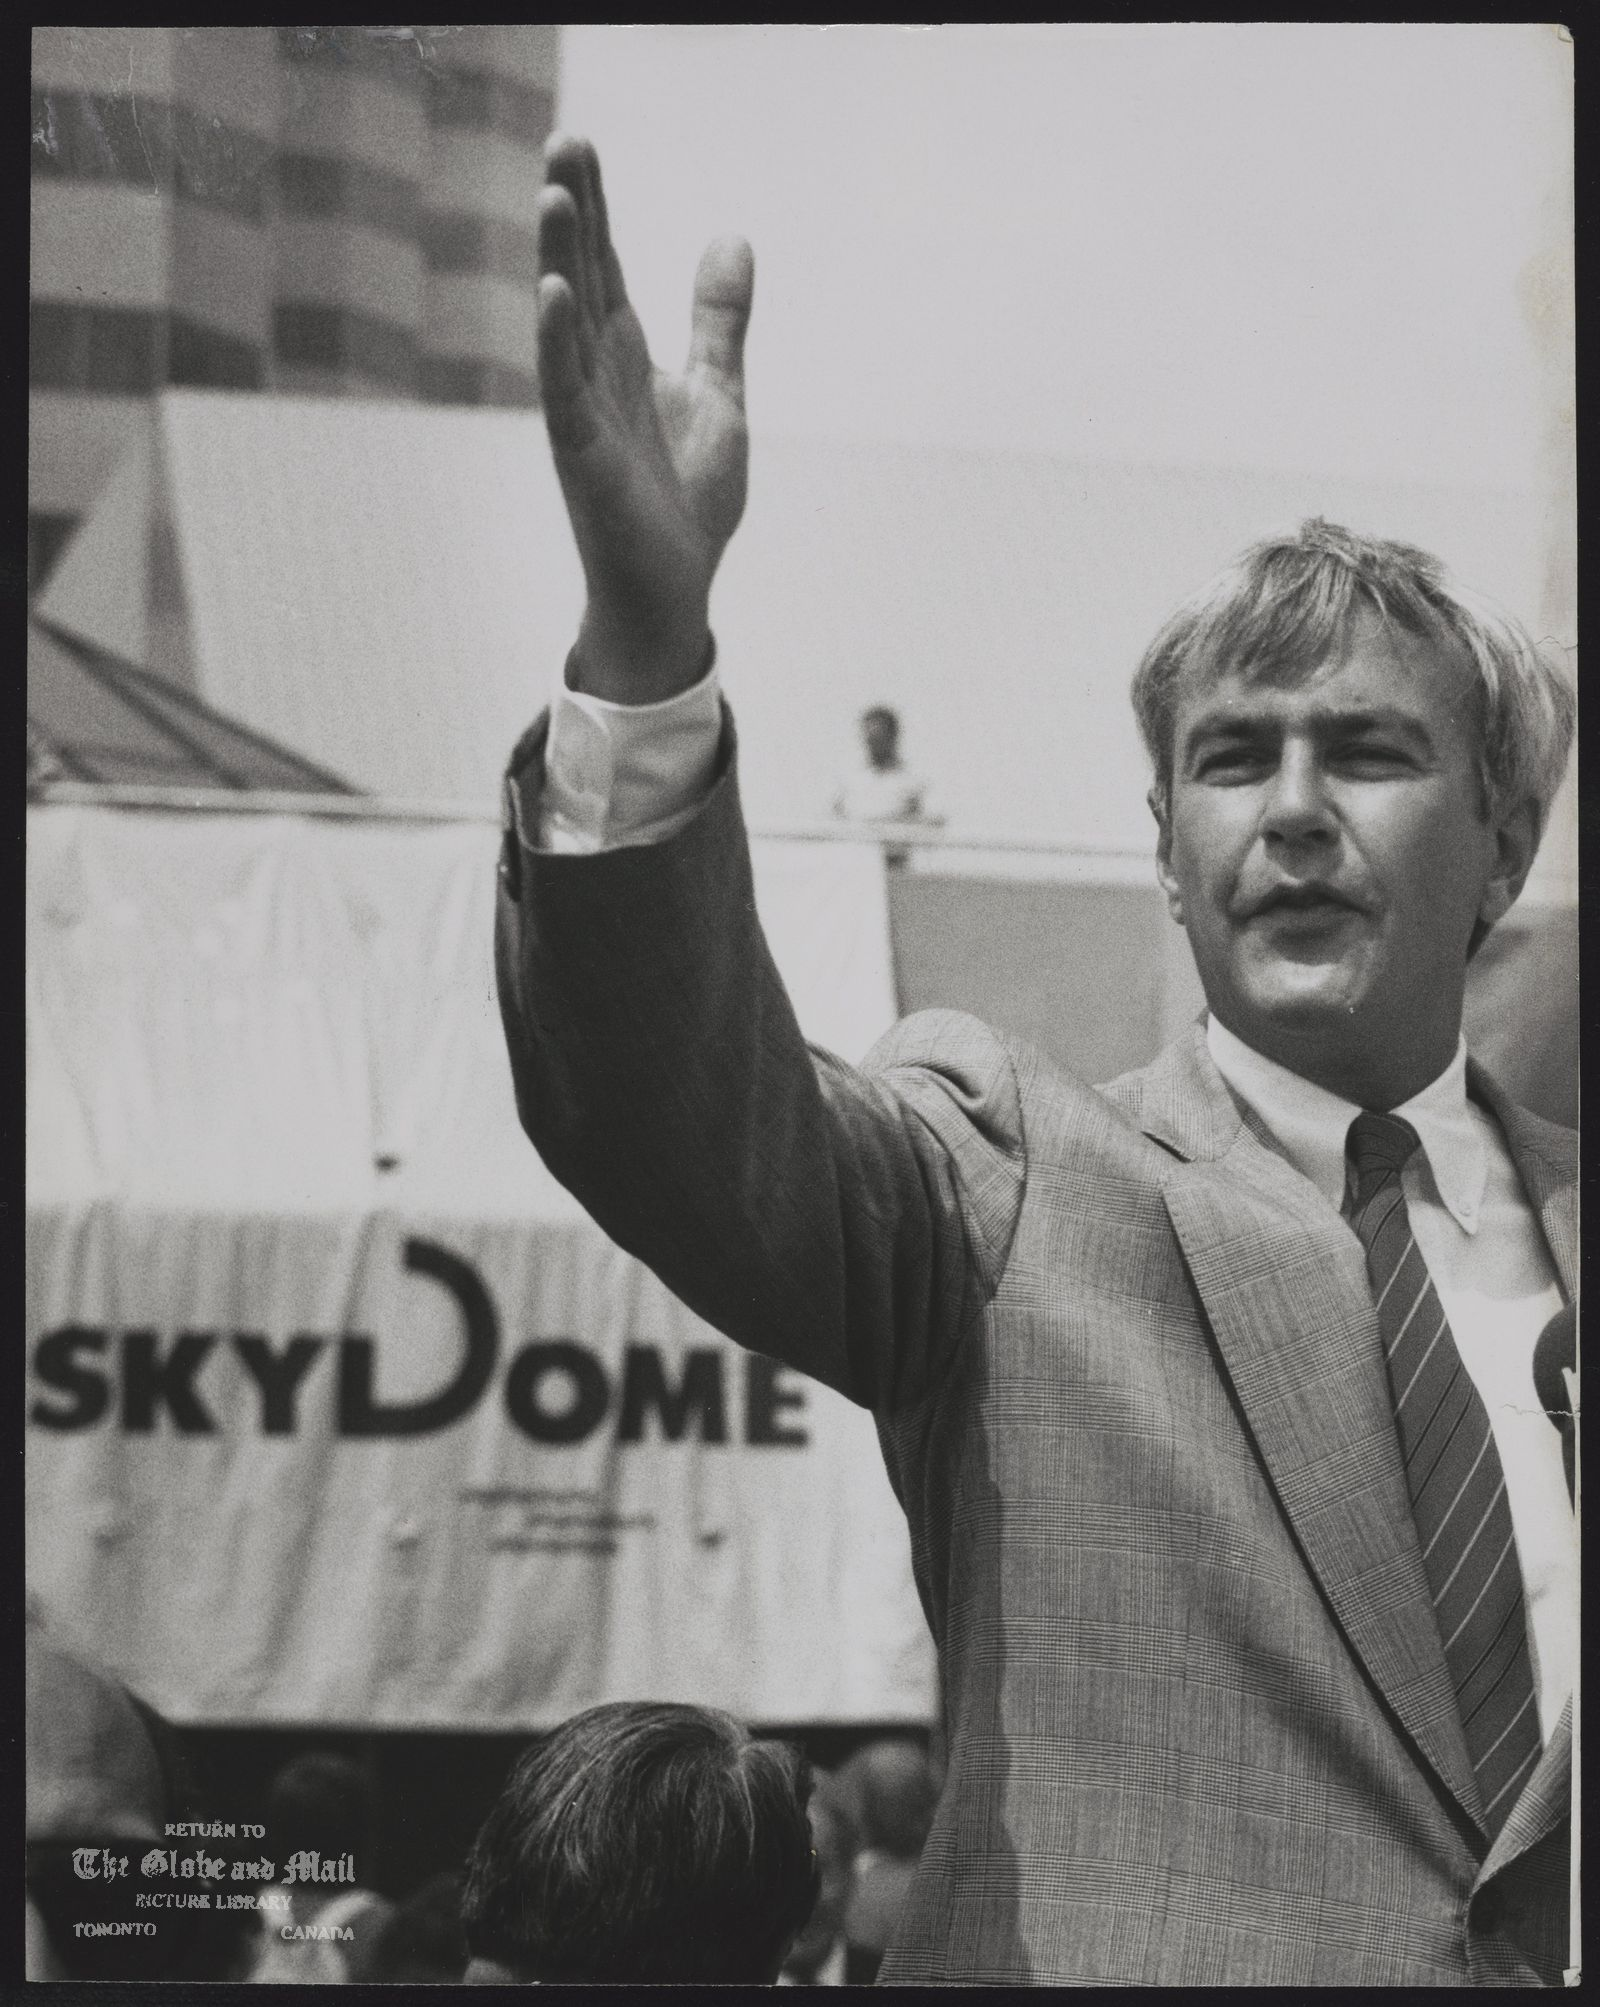 SKYDOME (Toronto) Premier David Peterson waves to onlookers yesterday during naming of the Skydome